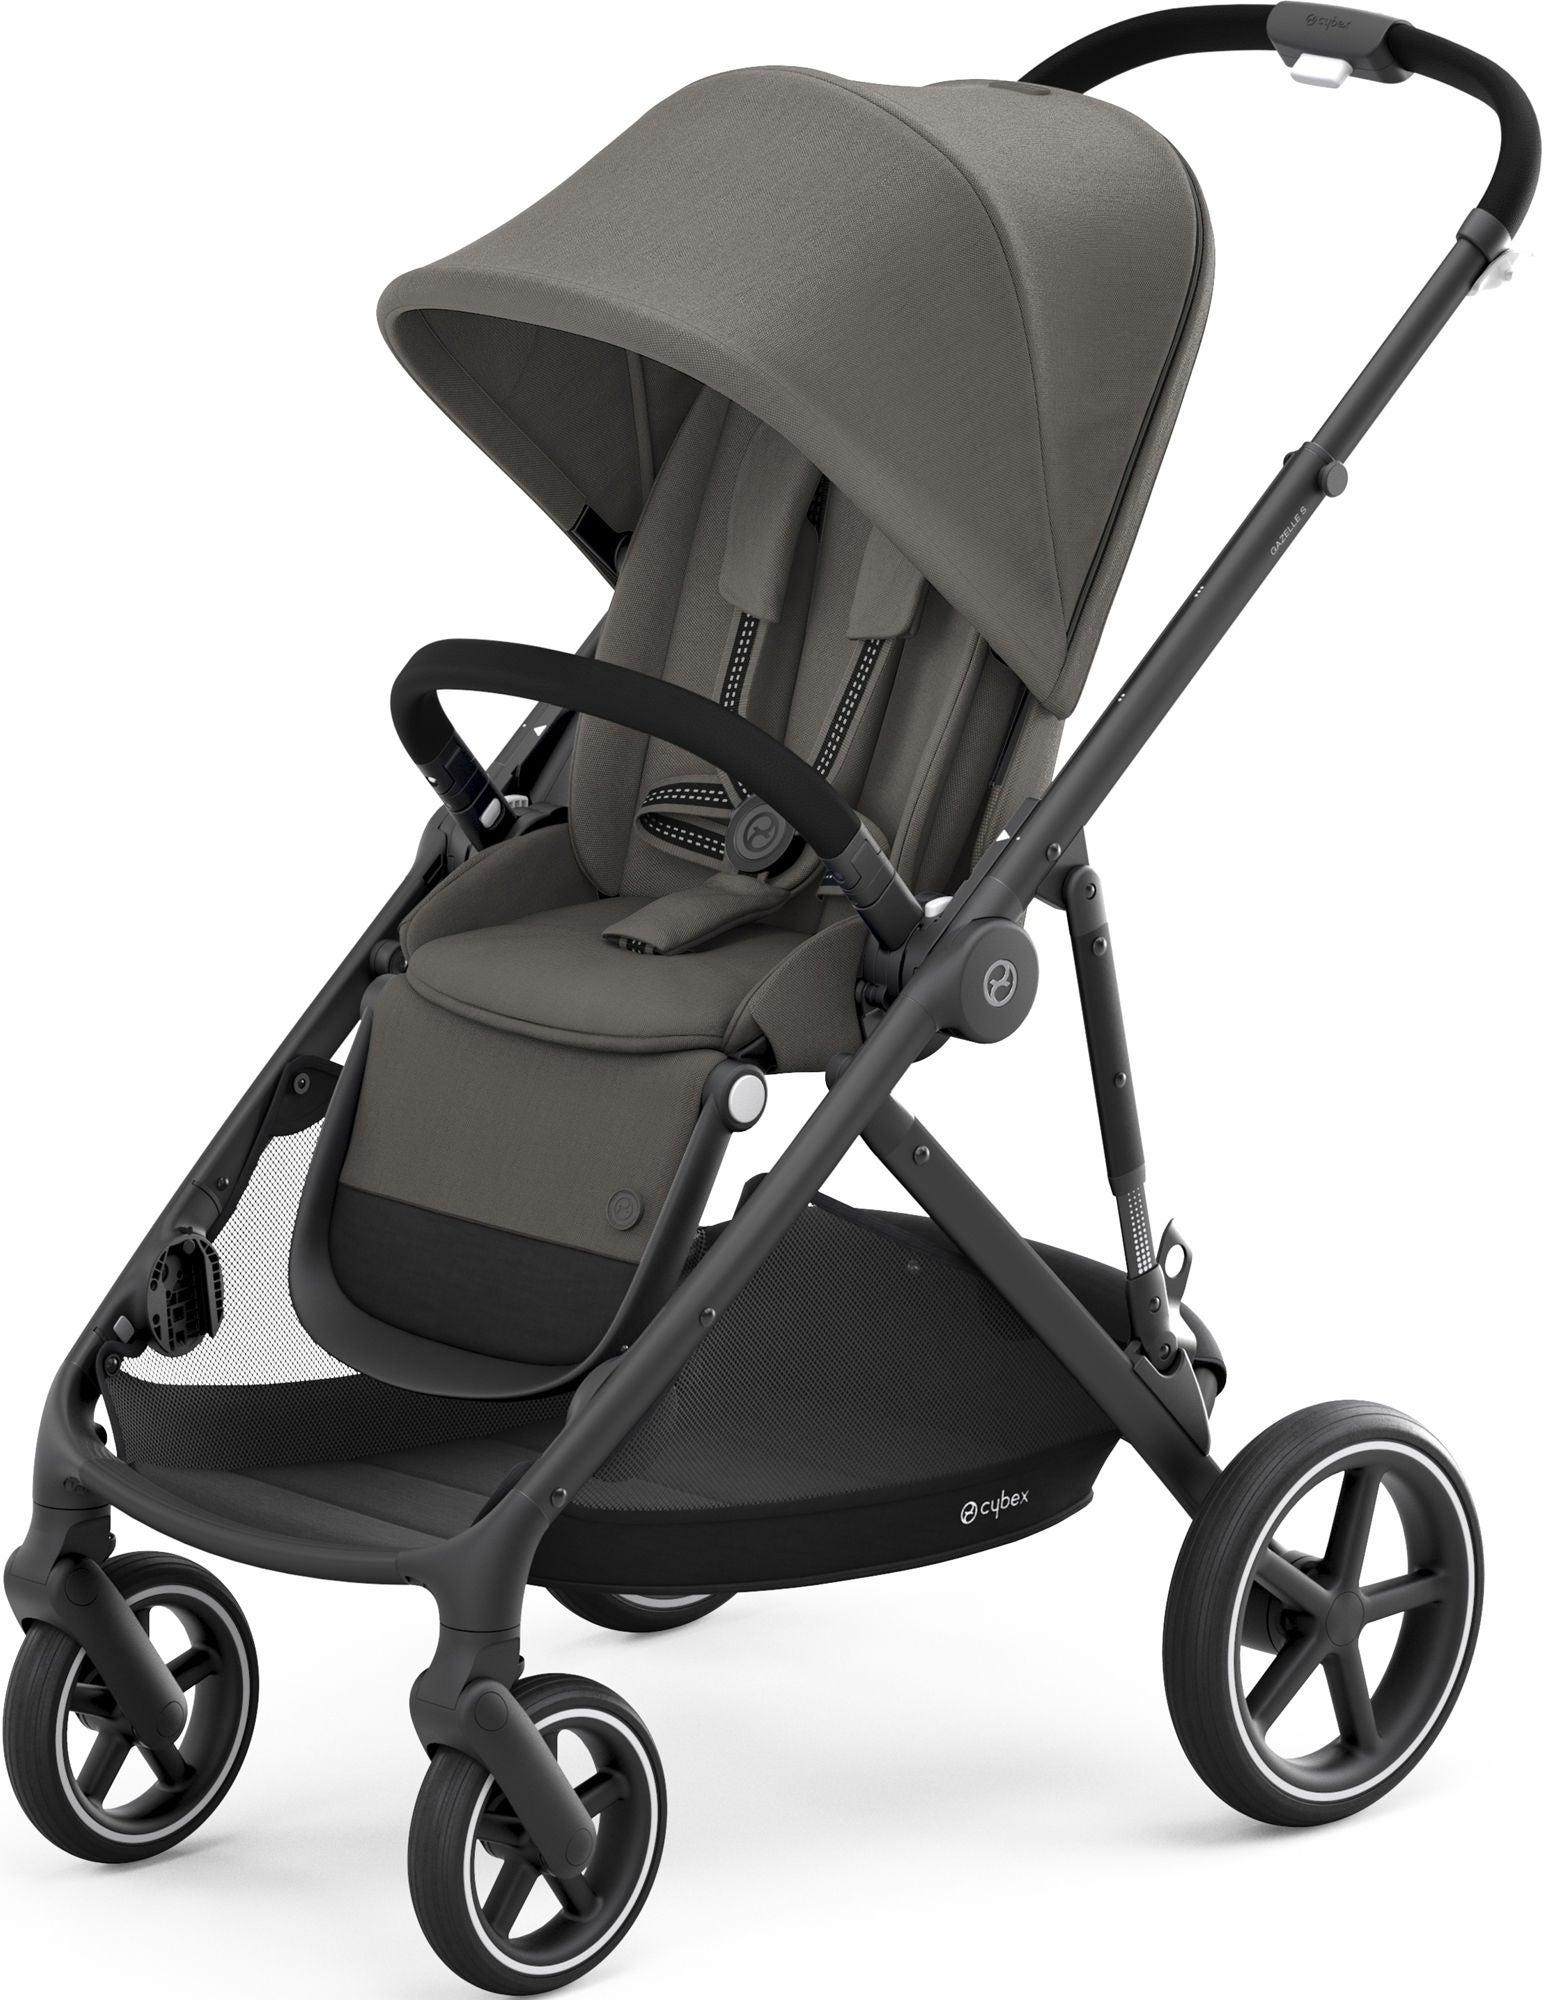 Cybex Gazelle S Sittvagn, Classic Beige/Taupe